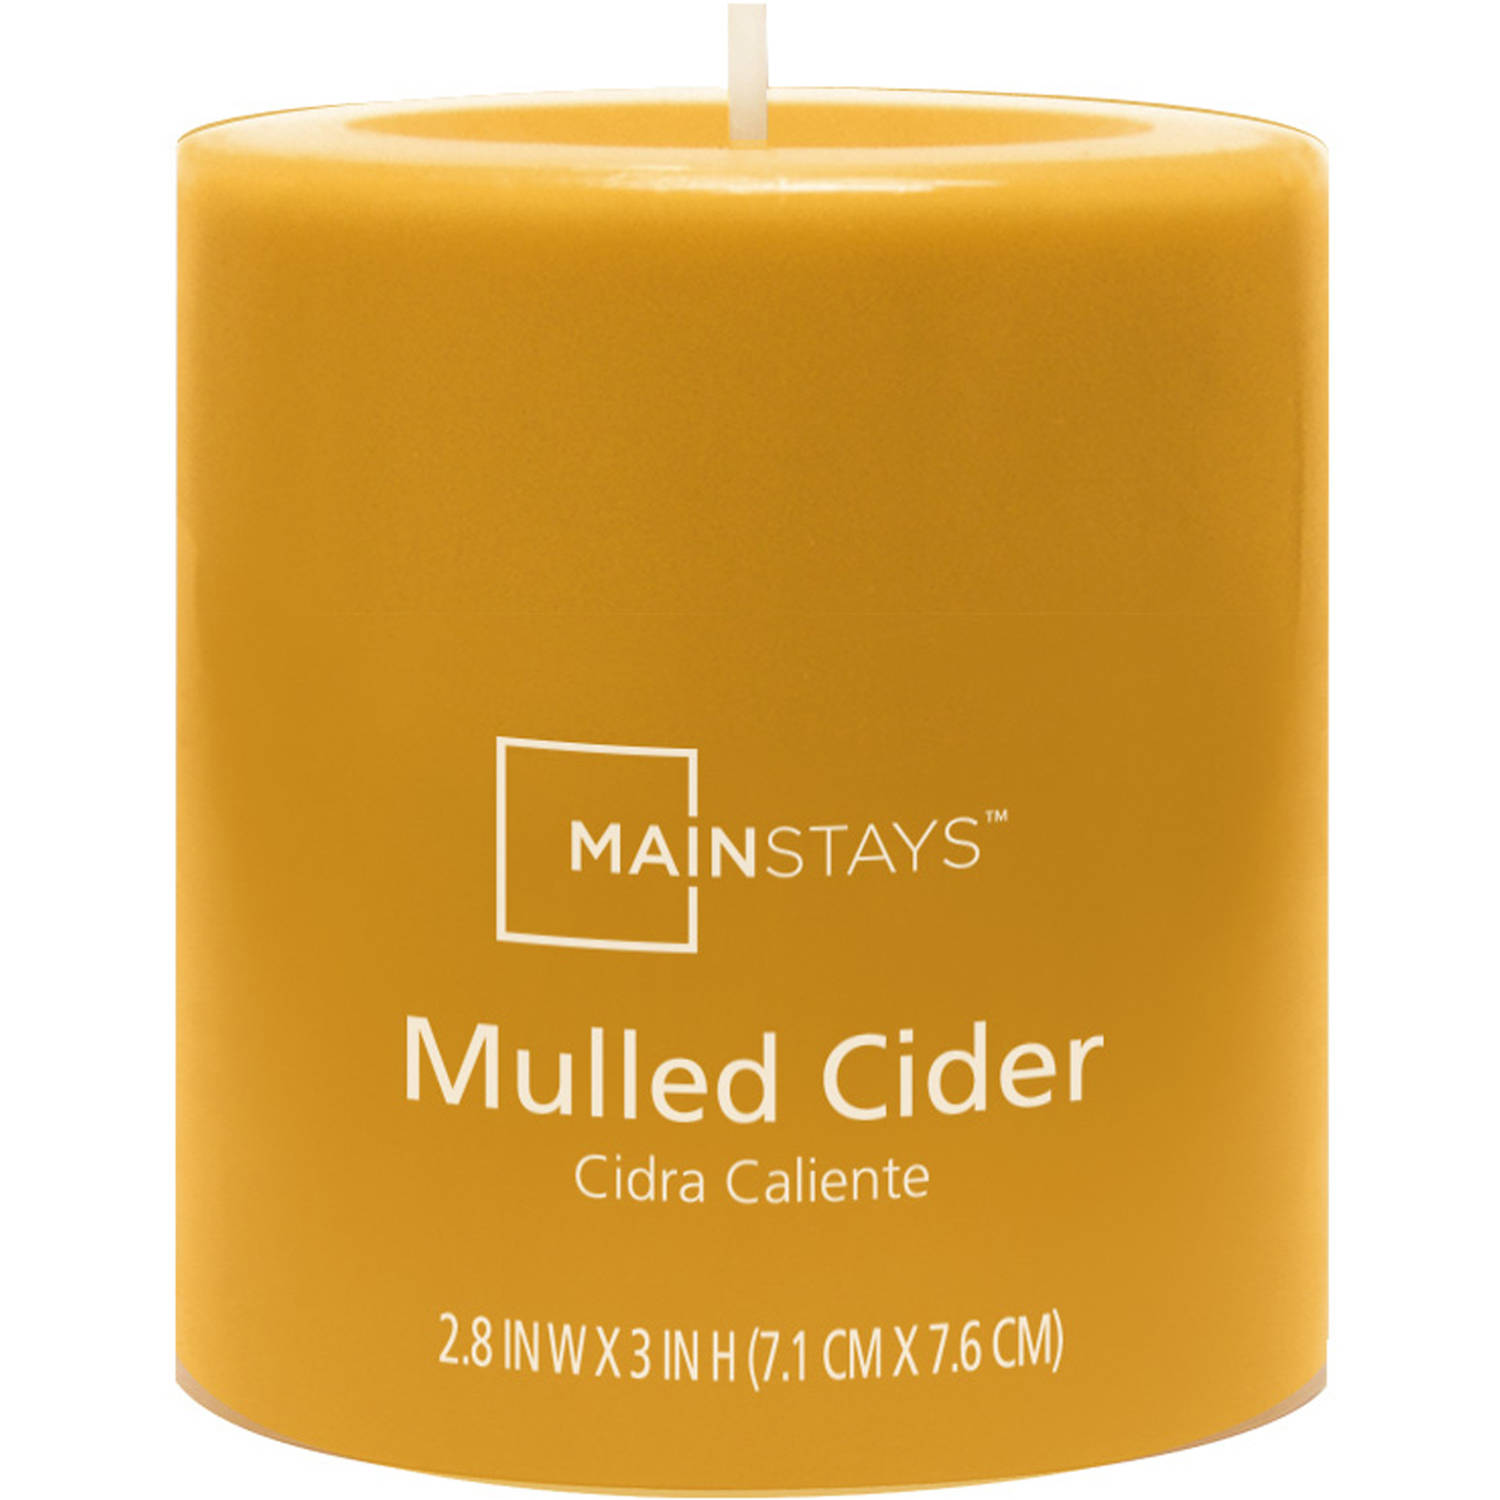 Mainstays Scented Pillar Candle, Mulled Cider